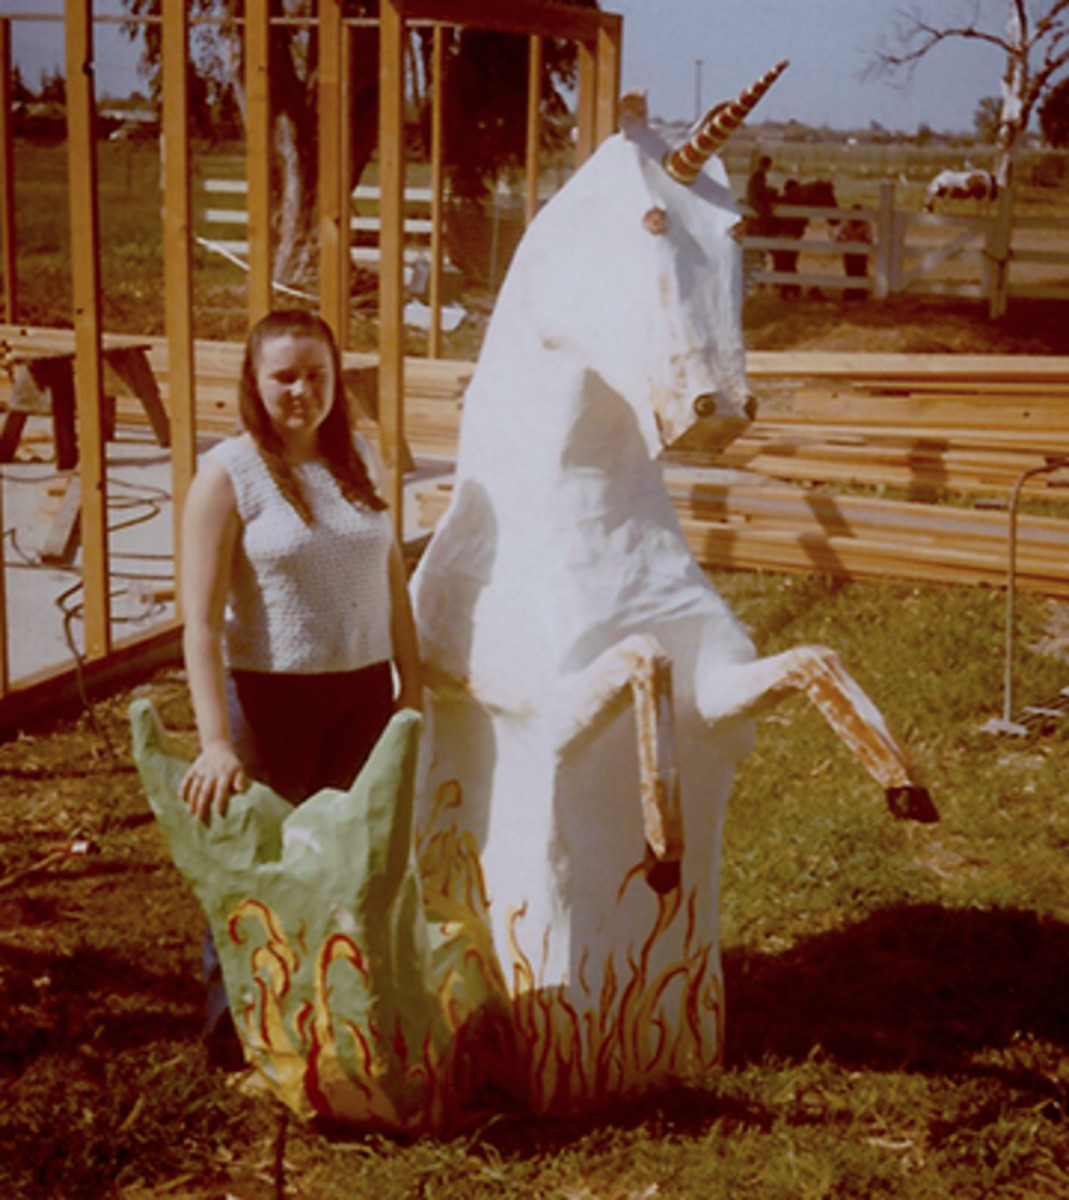 This is me in 1971 with my sculpture of a paper mache mer-unicorn.